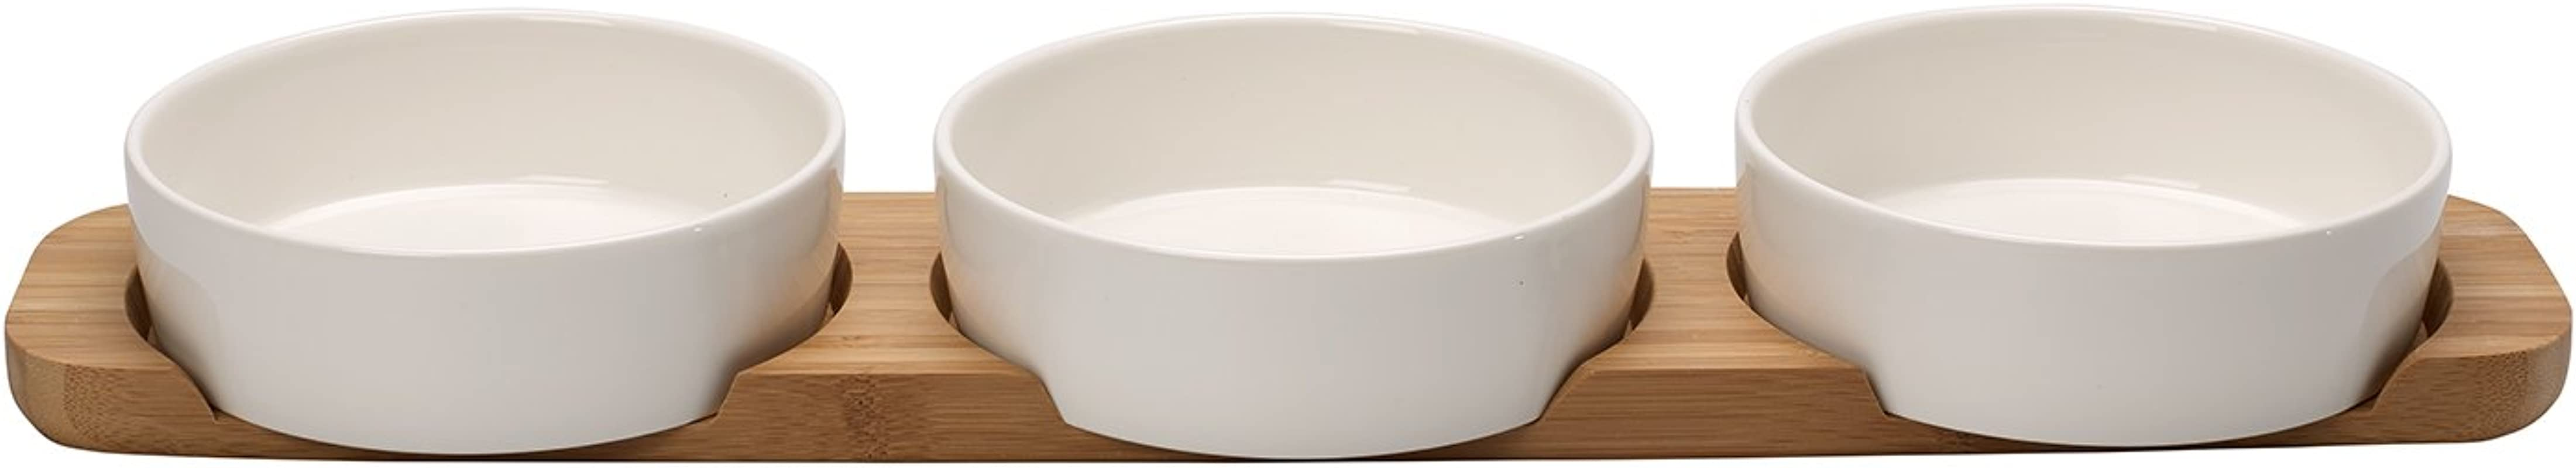 Pizza Passion 4 Piece Topping Bowl Set By Villeroy Boch Premium Porcelain Made In Germany Dishwasher And Microwave Safe Bowls 18 75 X 4 25 X 2 Inches